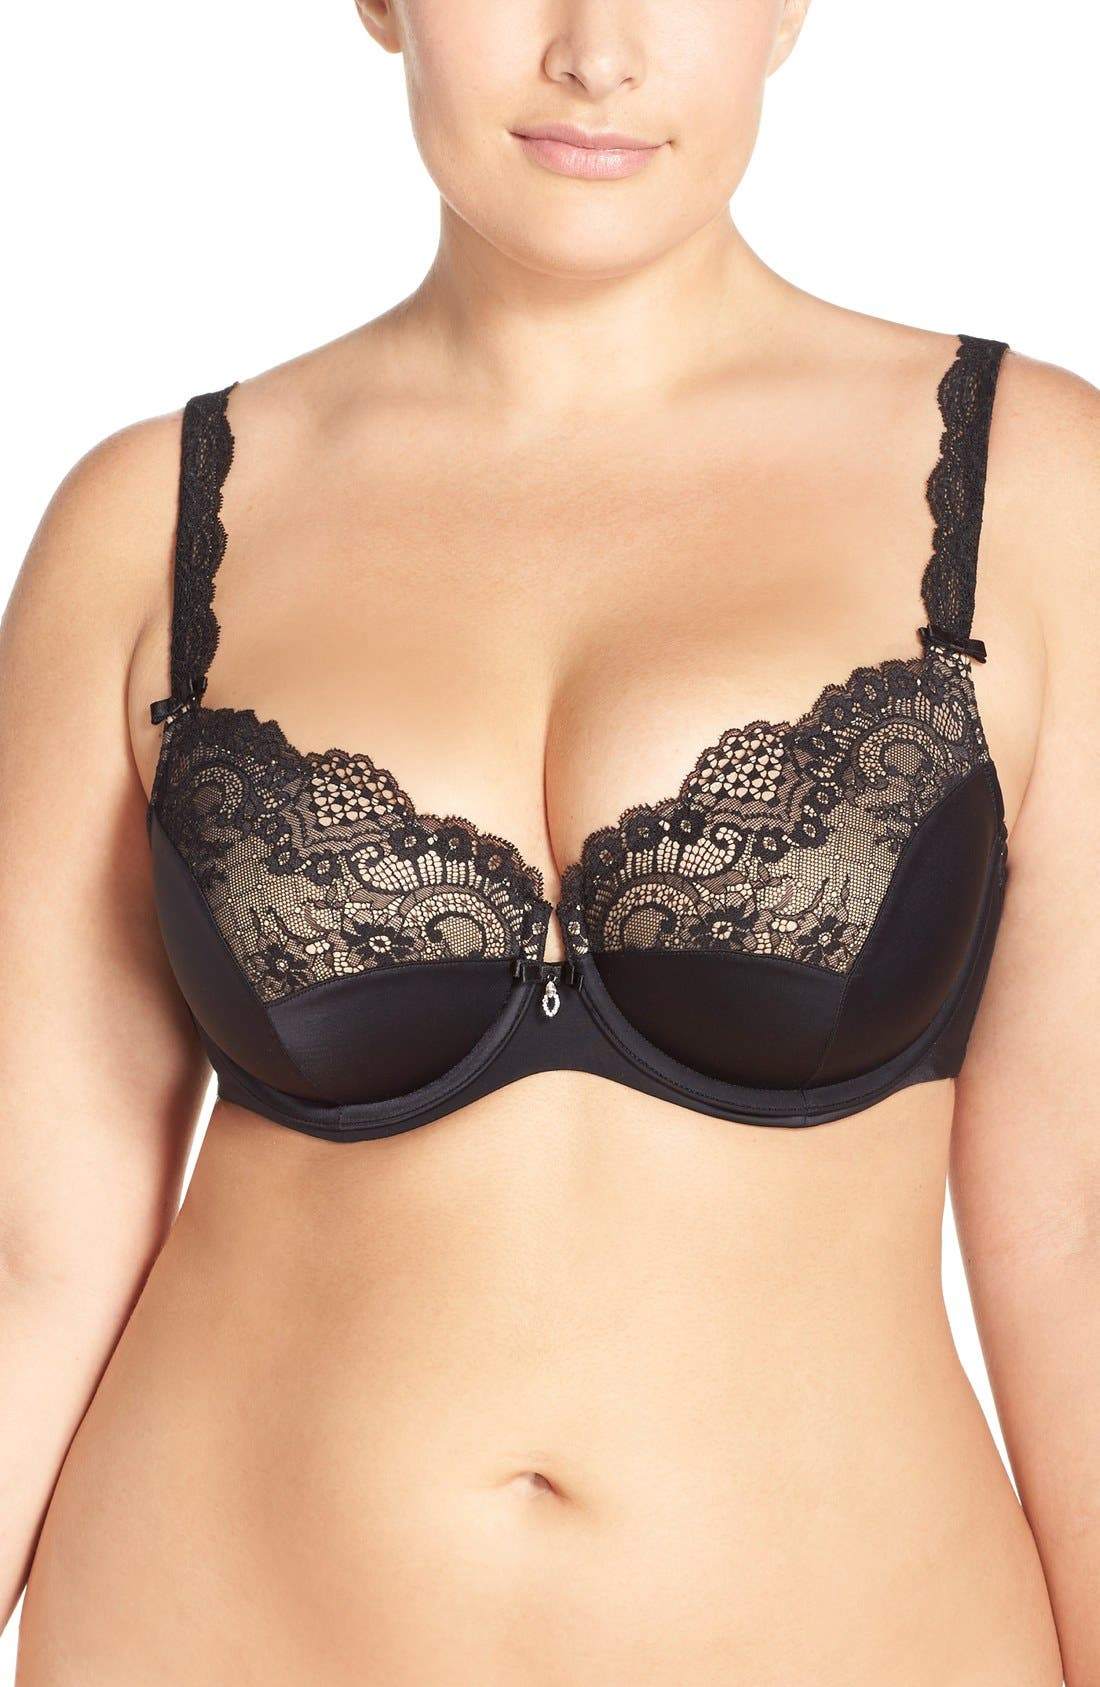 'Foxy' Lace Balconette Bra,                         Main,                         color, BLACK